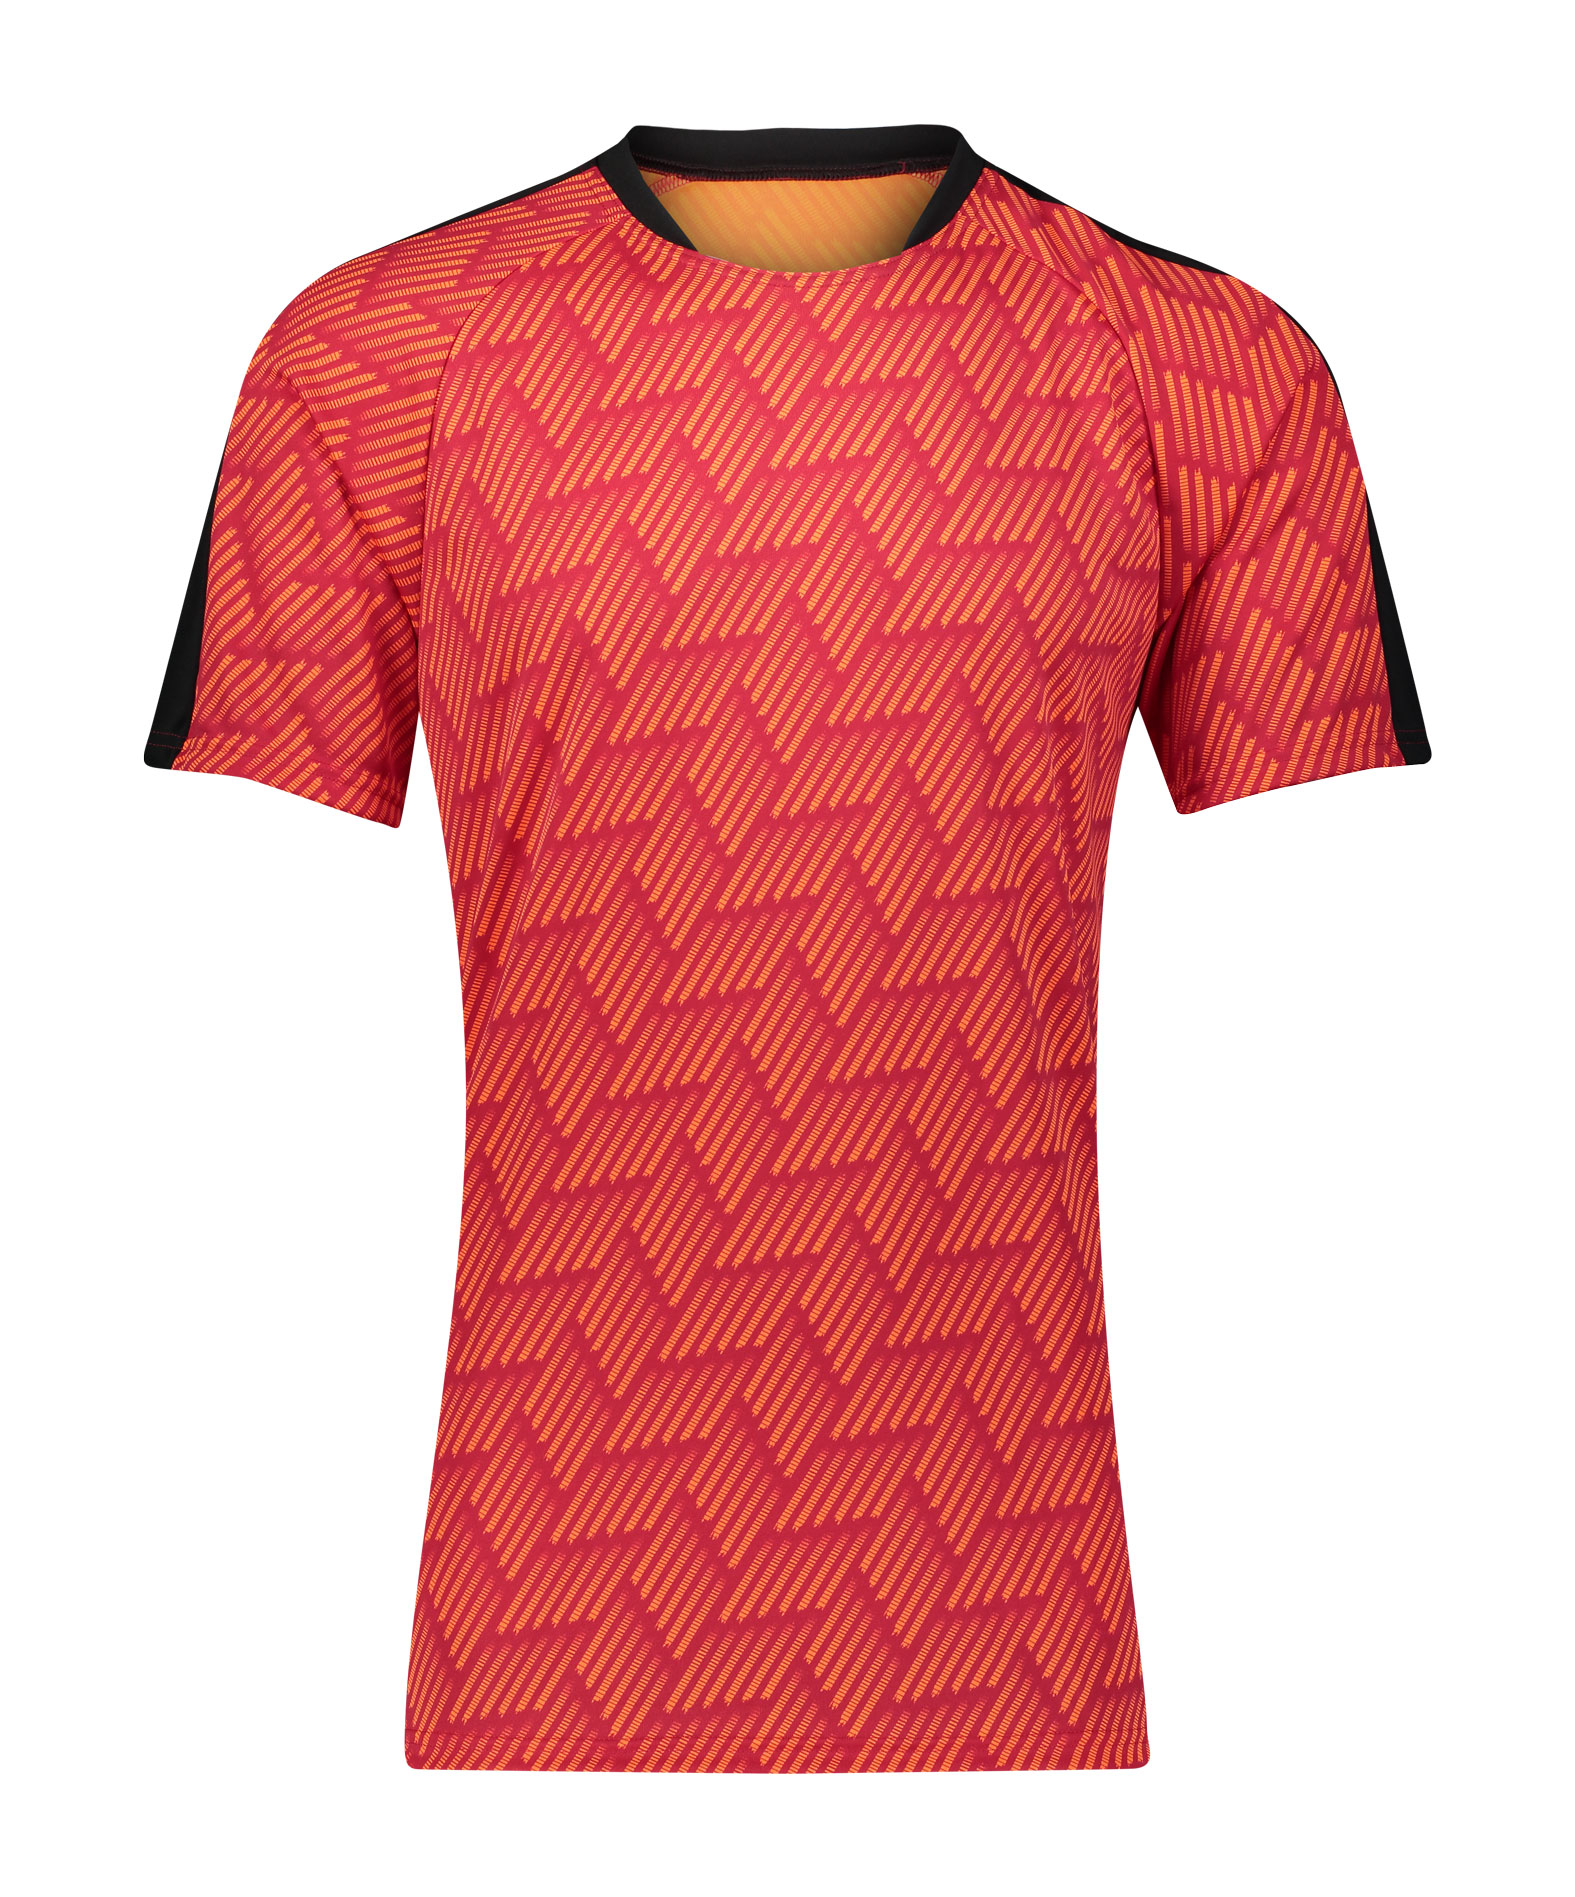 High Five Adult Hypervolt Jersey